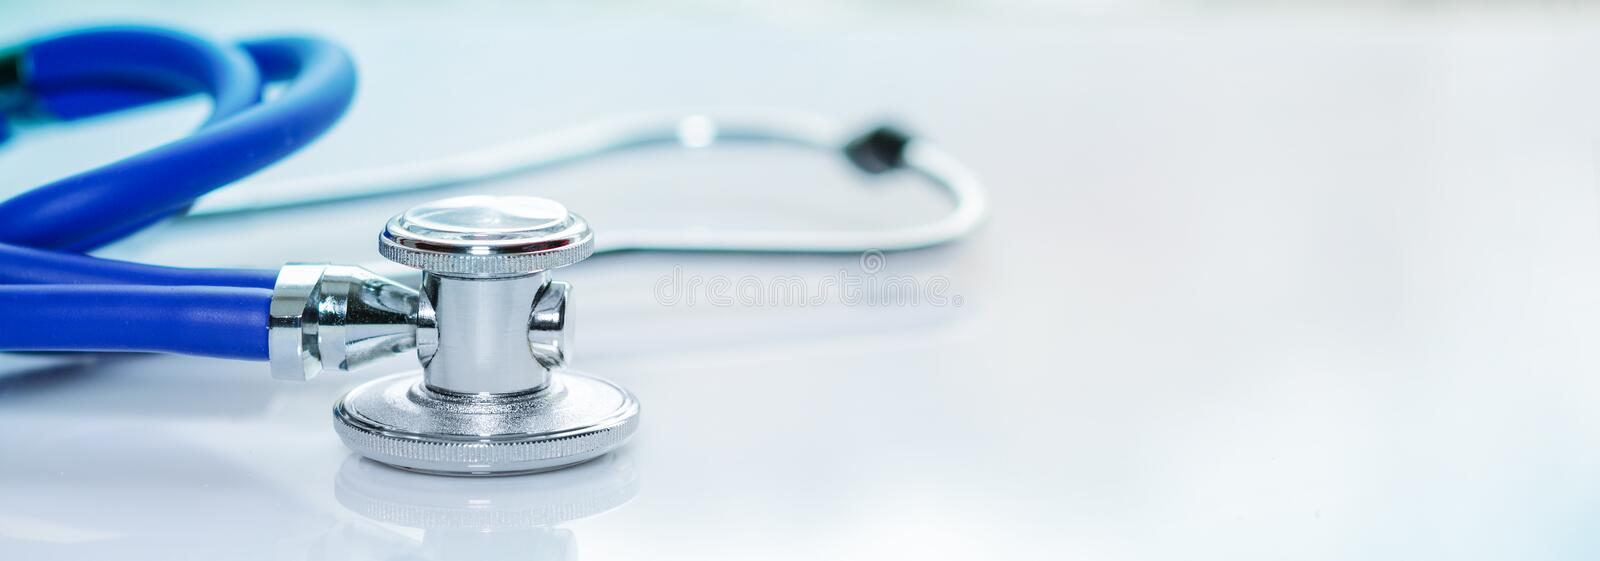 Stethoscope or phonendoscope on a doctor`s white desk. Treatment of cold or flu, banner size. Stethoscope or phonendoscope on a doctor`s white desk, for stock photo